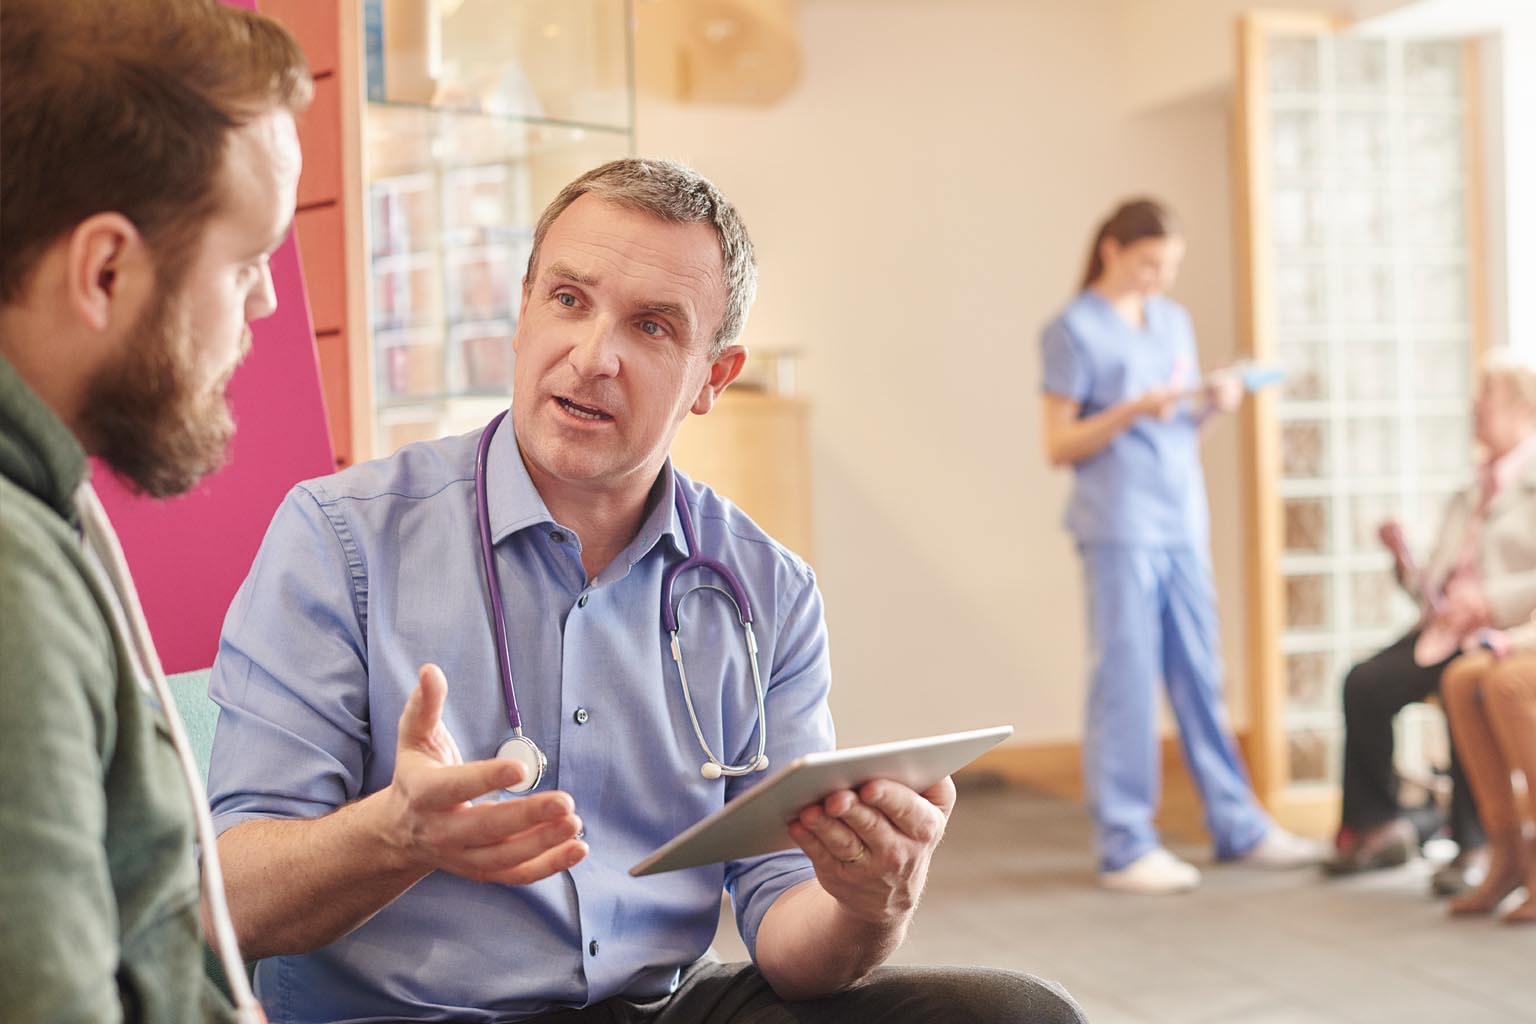 clinicians with patients and devices in lobby